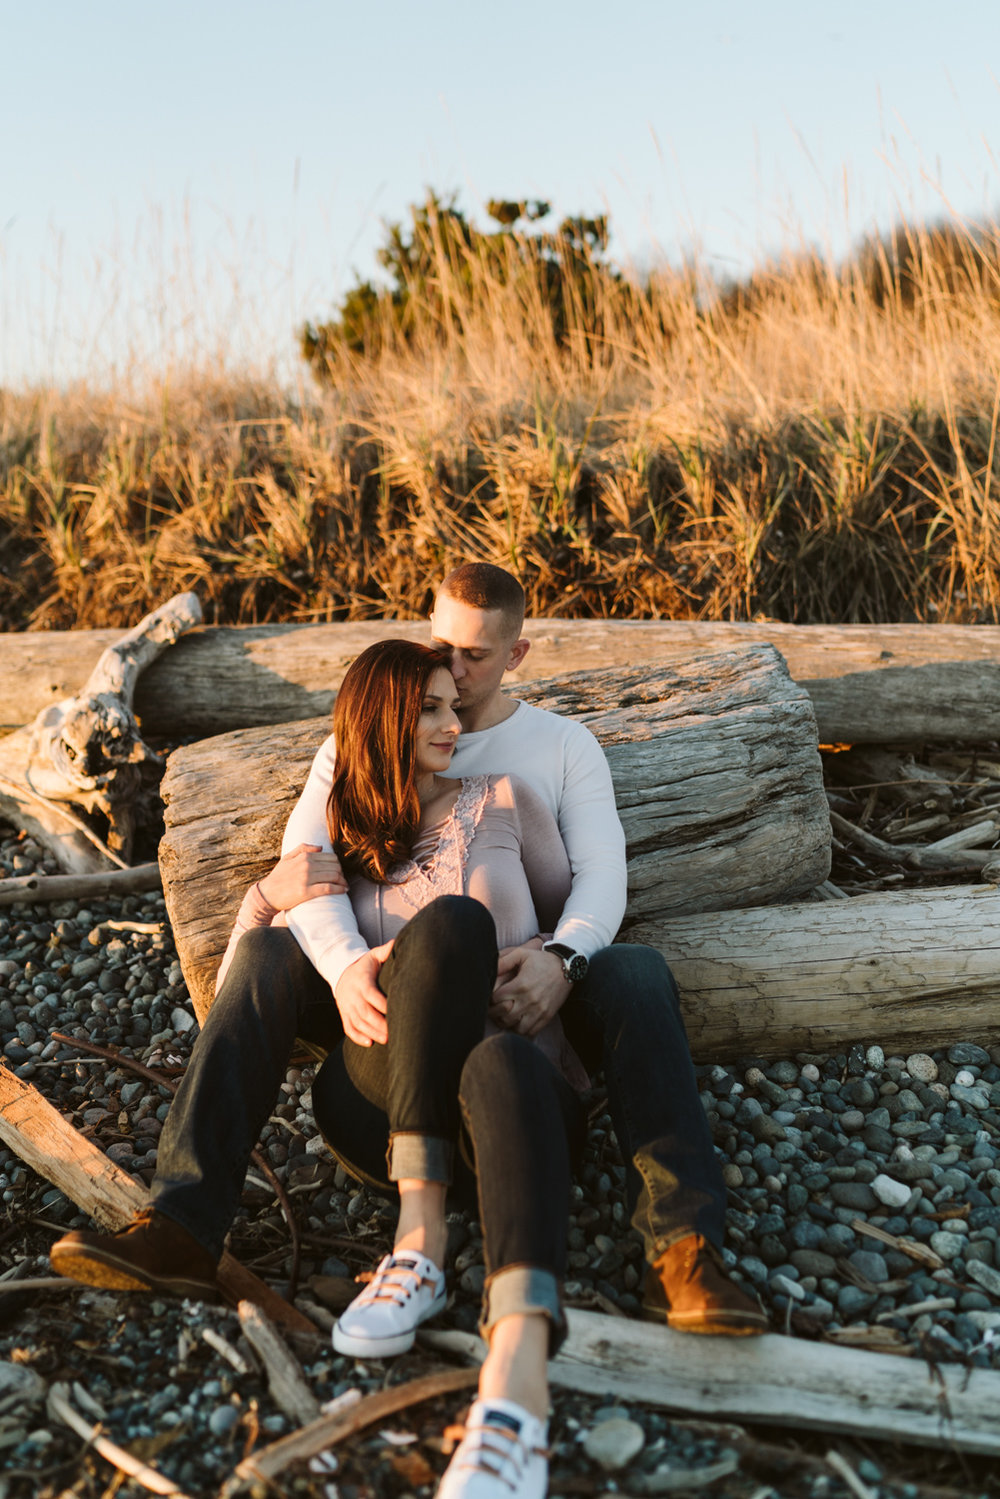 April Yentas Photography - Bonzai & Alex - Engagement Session-90.jpg